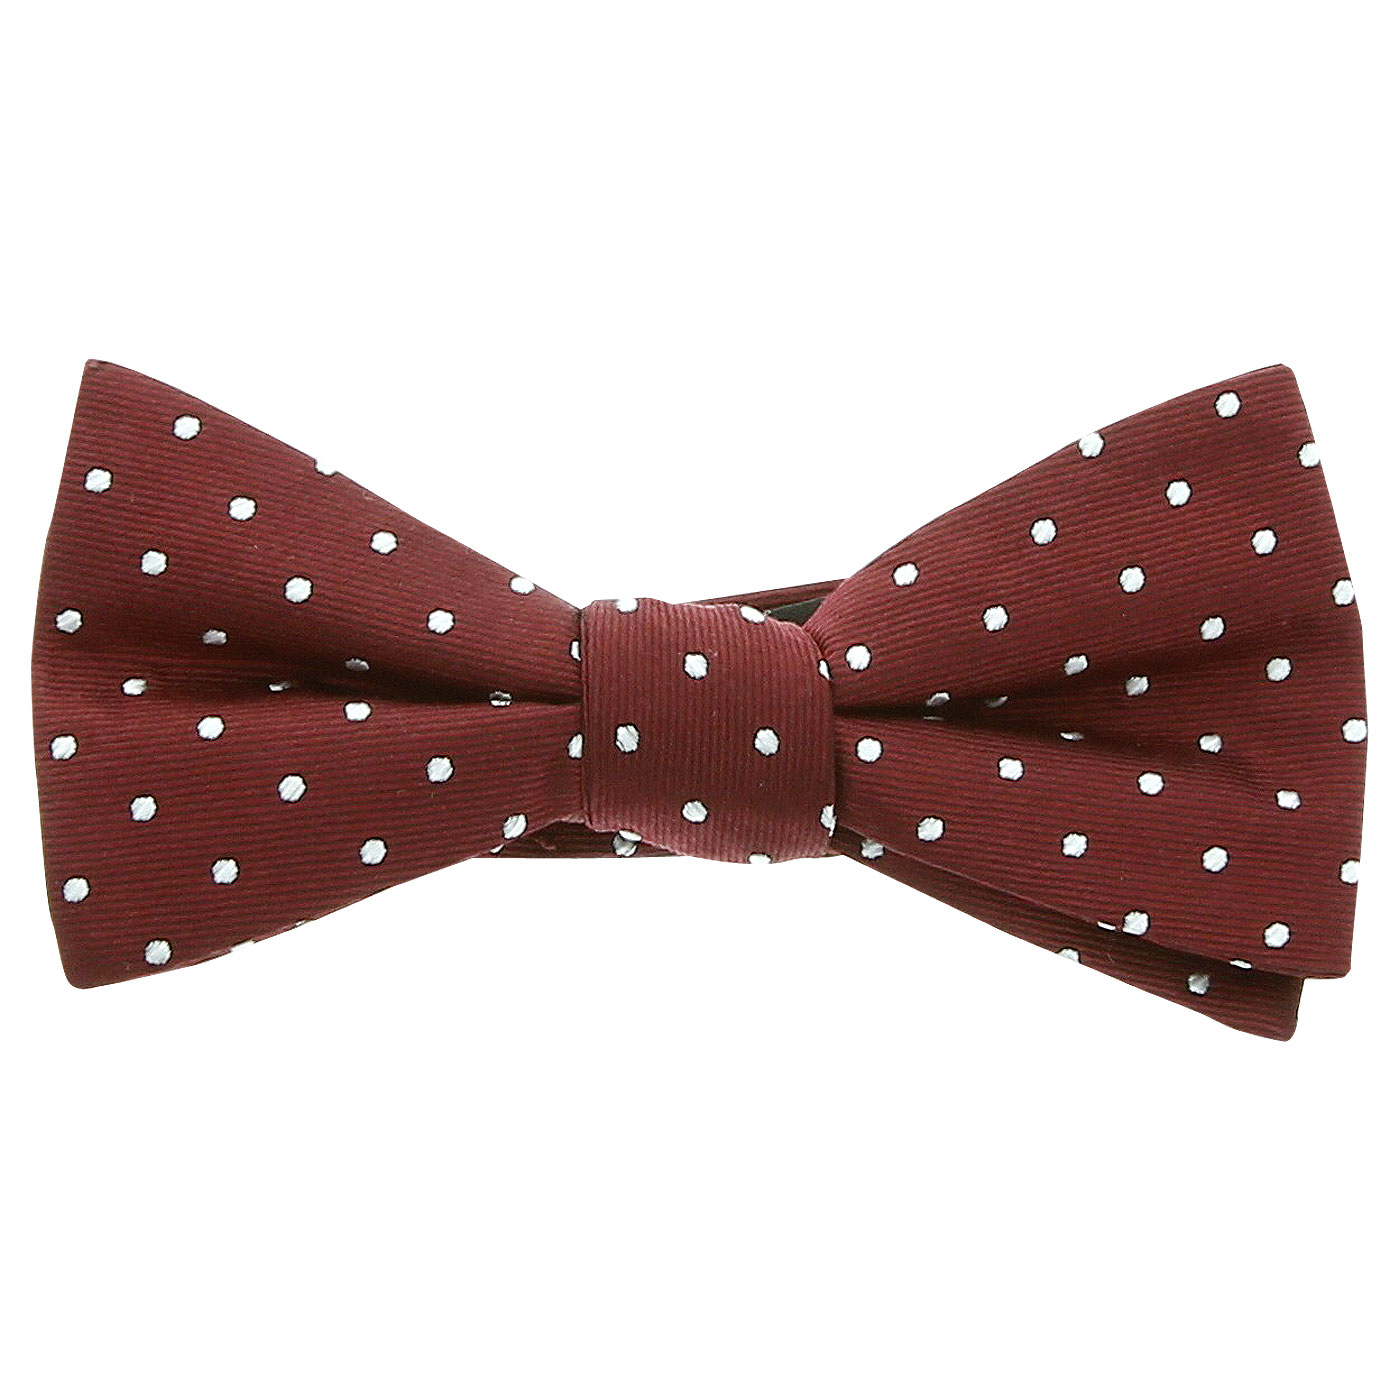 Bow ties 100% Solid silk or fancy by Webmenshirts